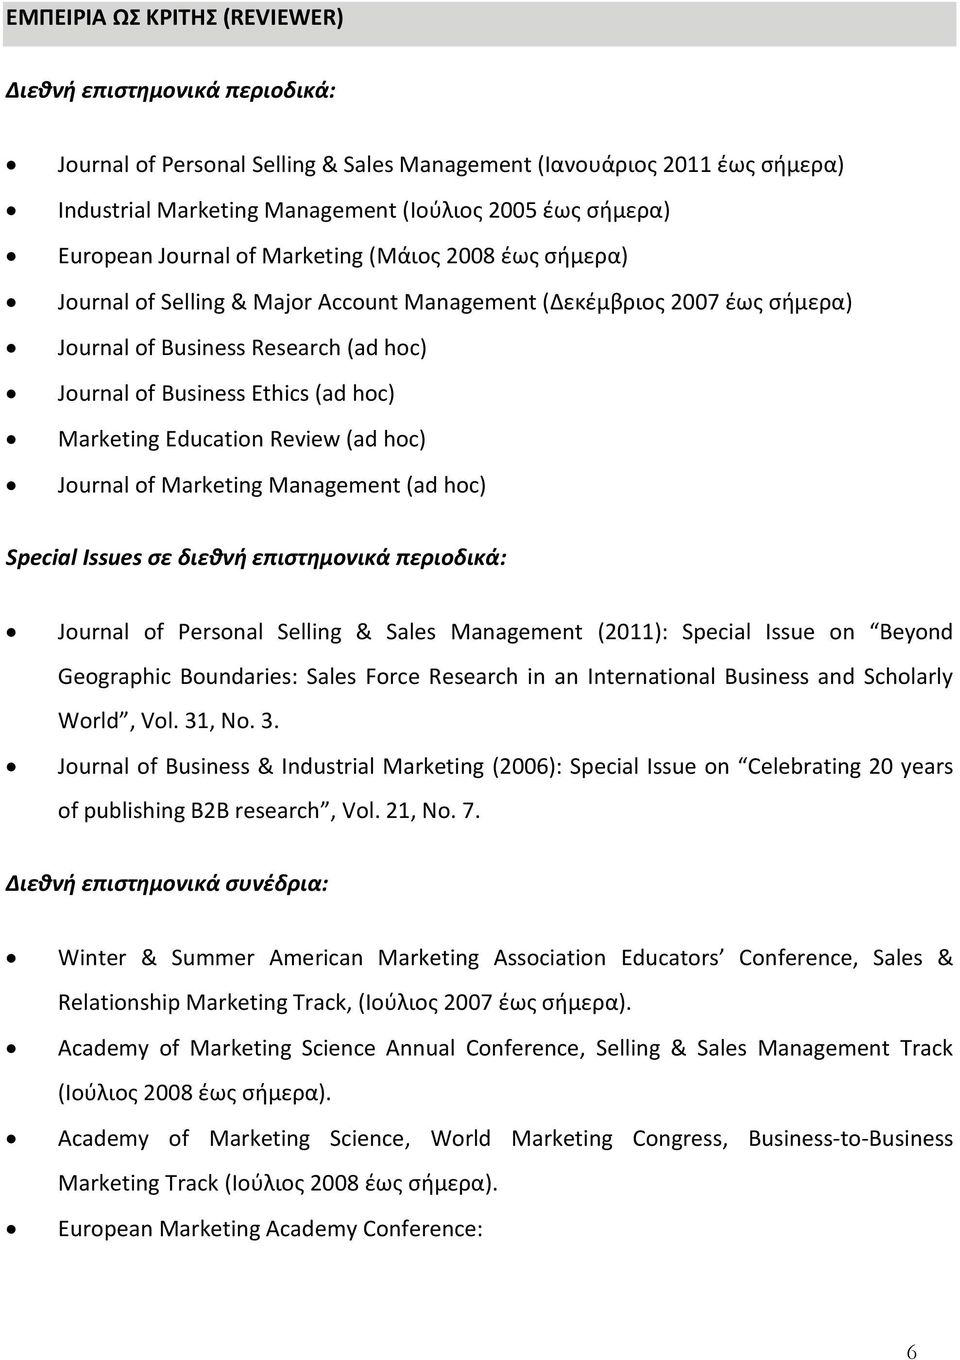 hoc) Marketing Education Review (ad hoc) Journal of Marketing Management (ad hoc) Special Issues σε διεθνή επιστημονικά περιοδικά: Journal of Personal Selling & Sales Management (2011): Special Issue